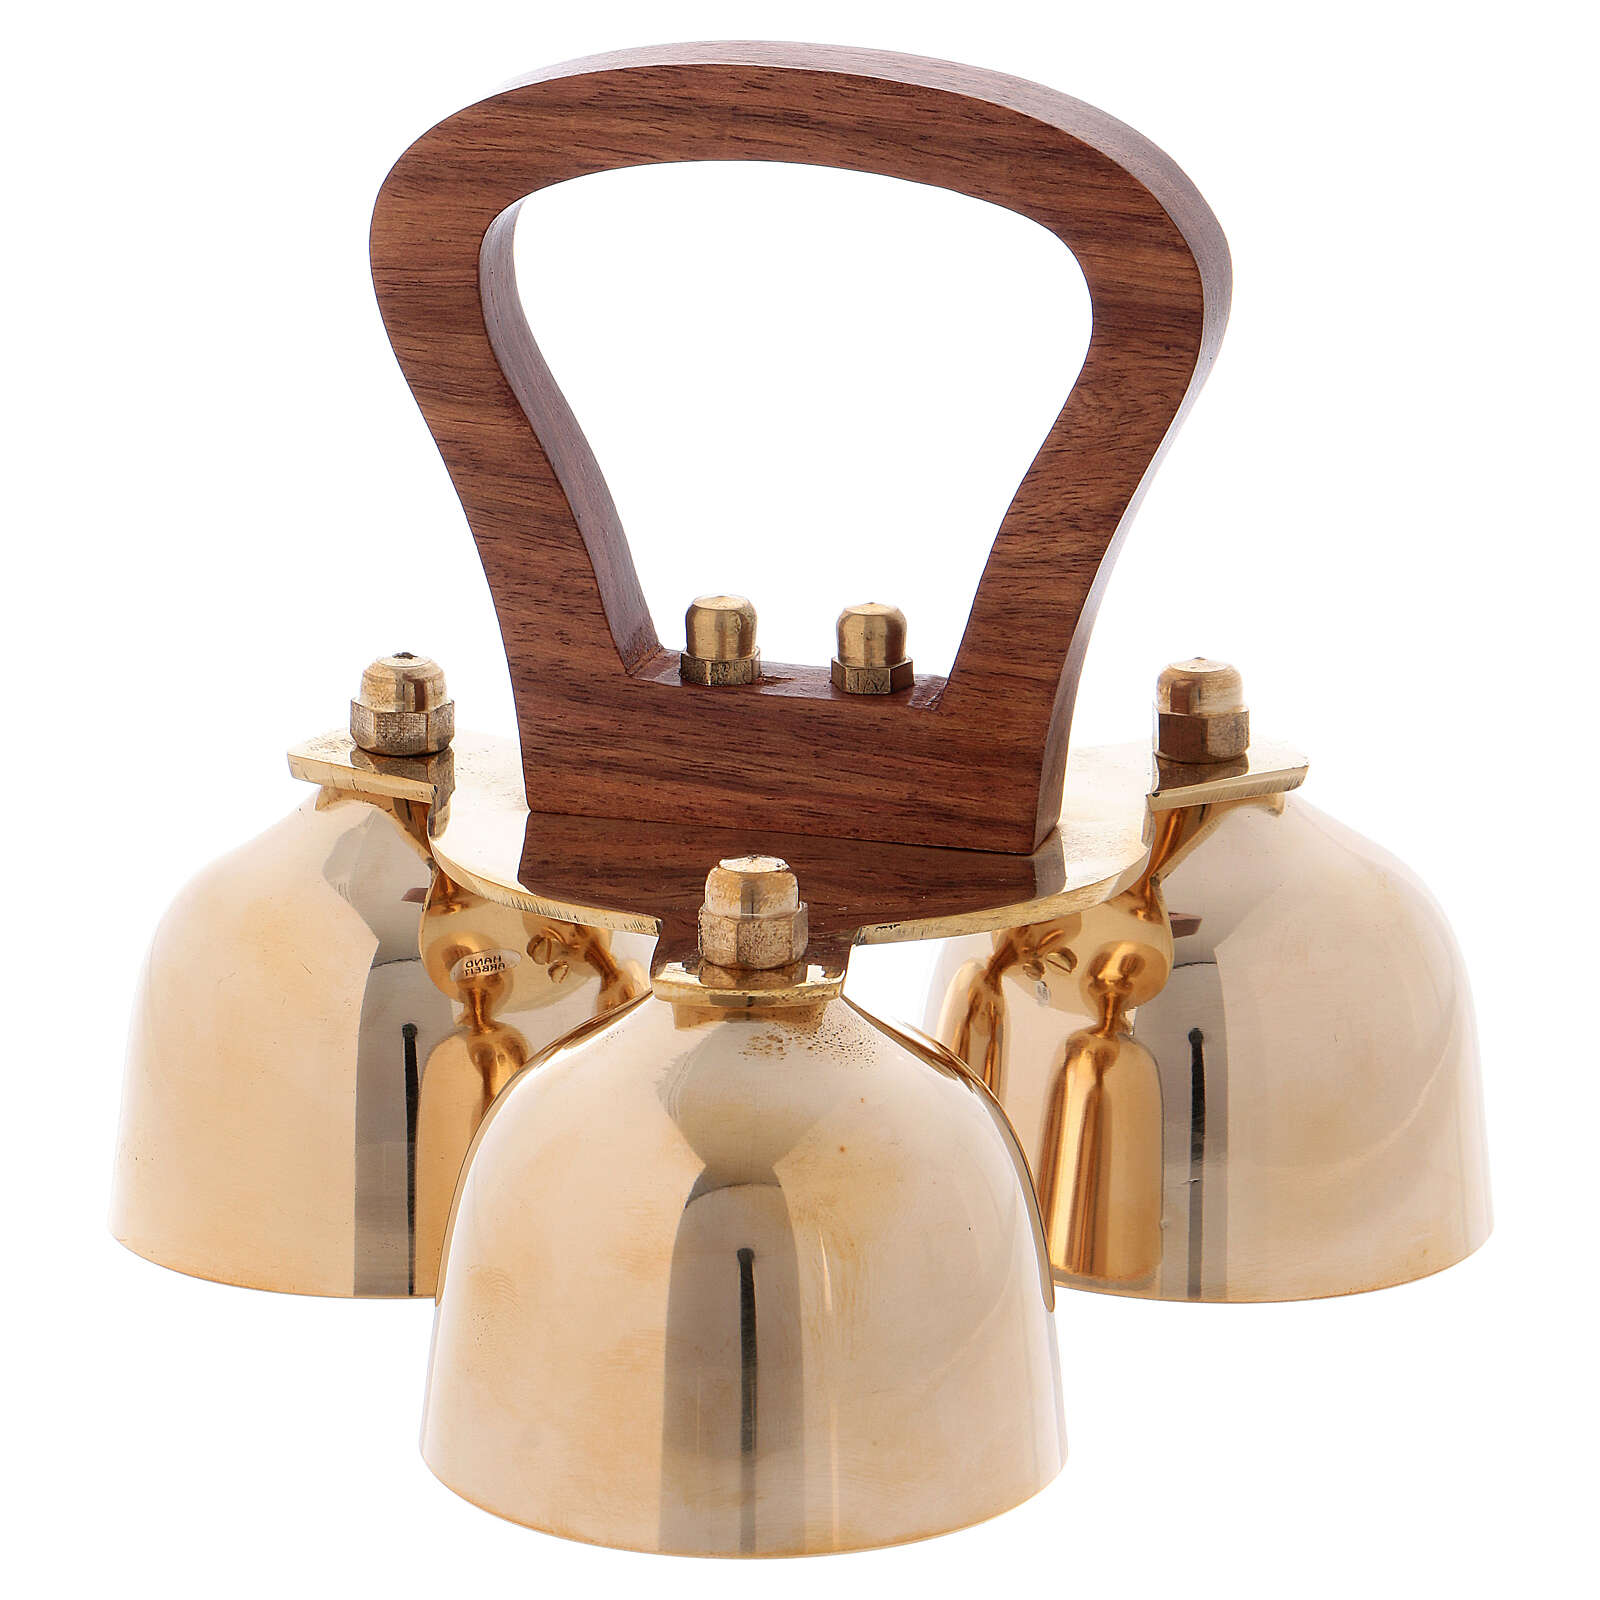 Liturgical bell 3 sounds with wooden handle 3